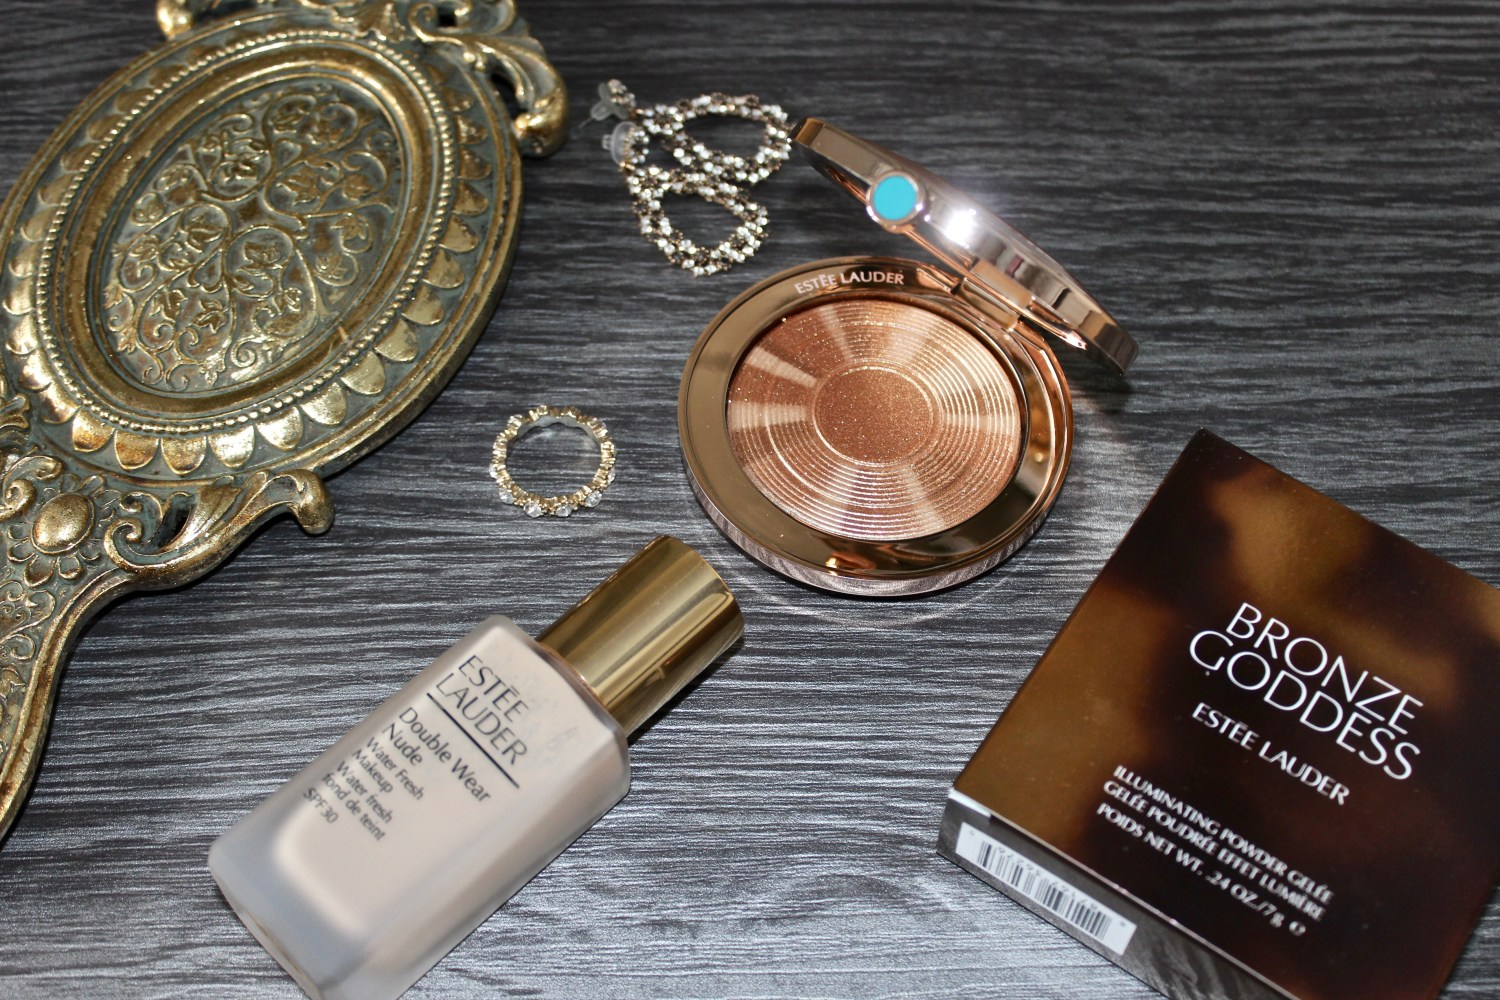 Esteè Lauder Bronze Goddess Illuminating Powder Gelèe